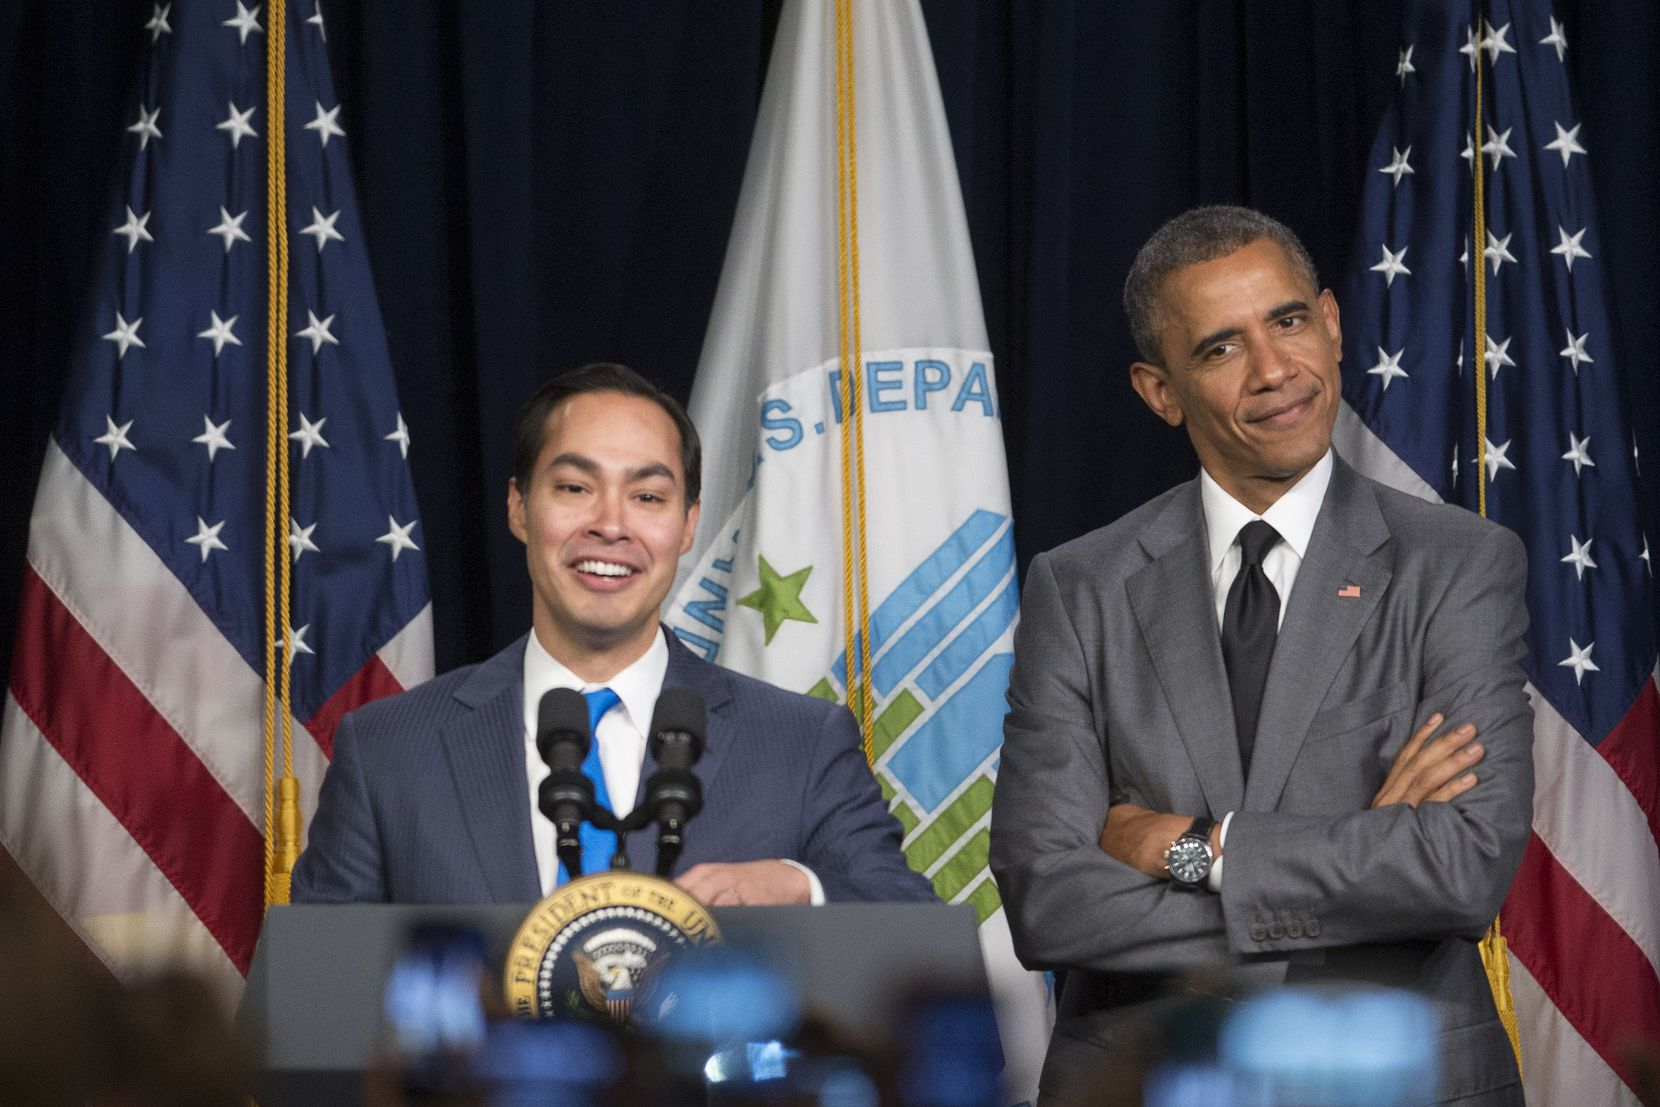 Former President Barack Obama and HUD Secretary Julian Castro spoke at the Department of Housing and Urban Development.